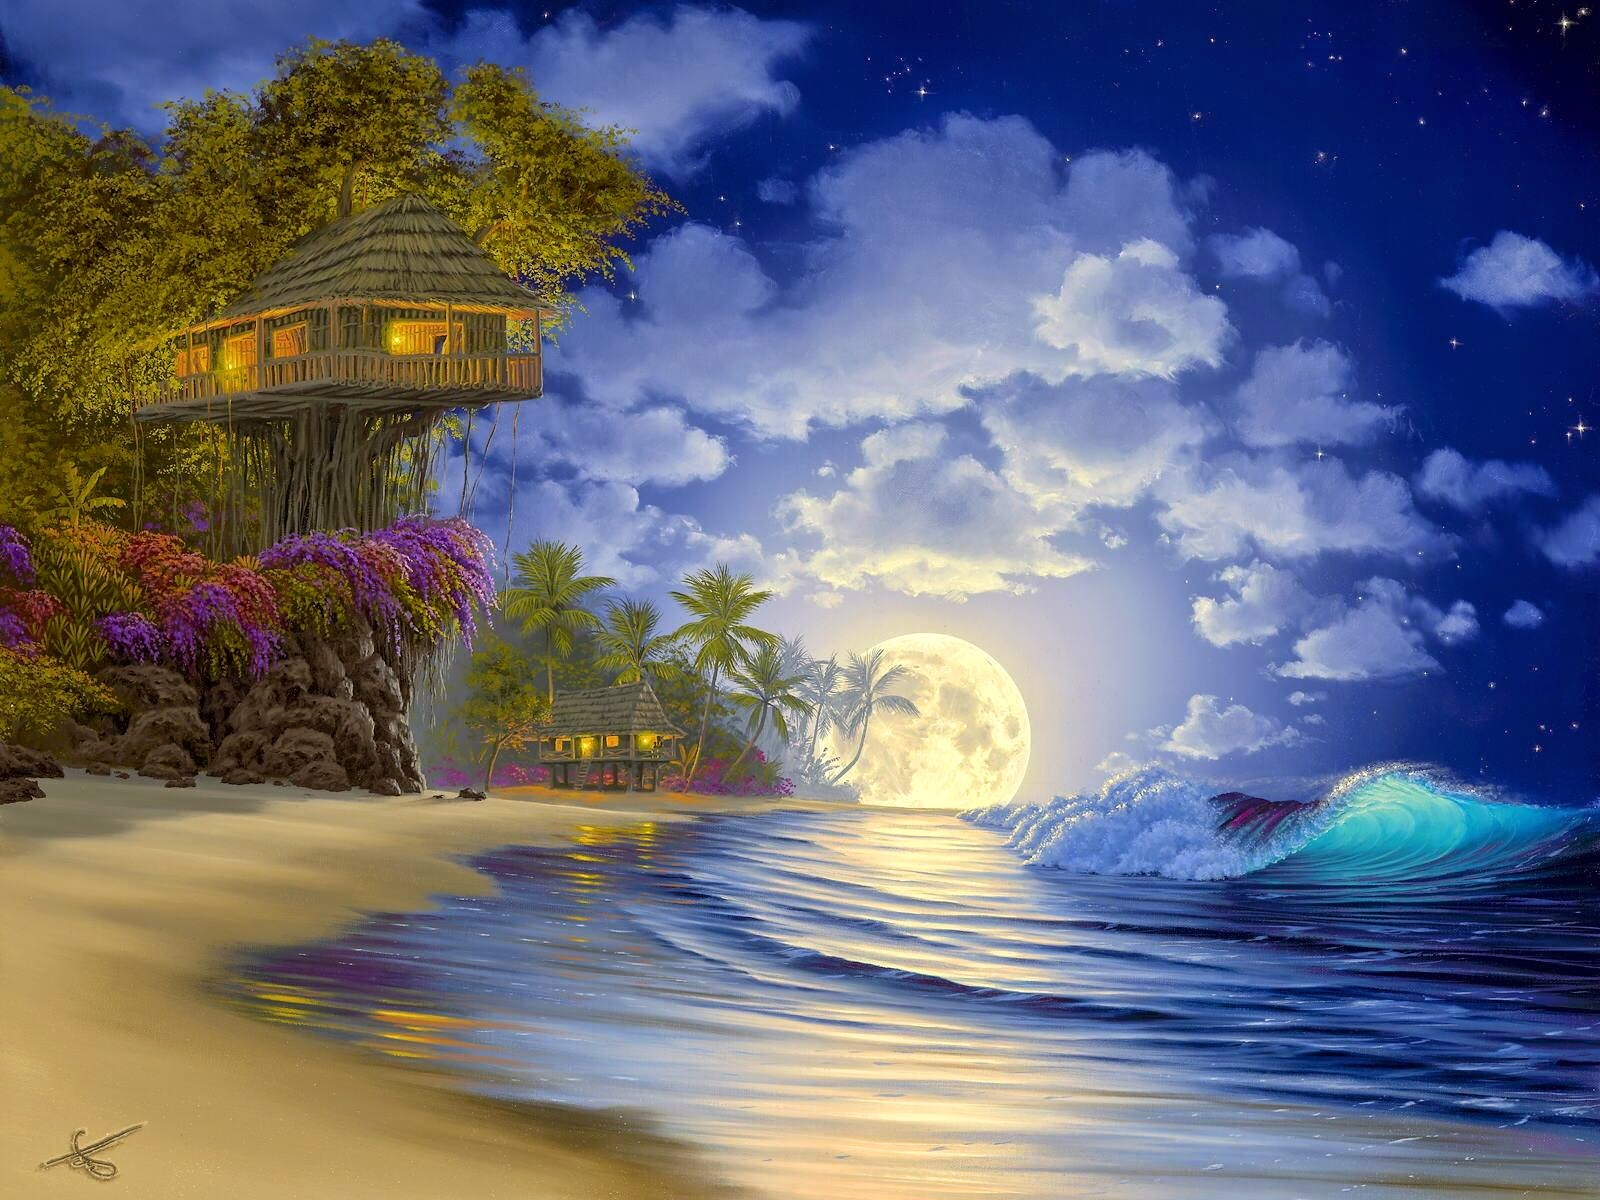 Beautiful tree house fantasy fairy tale images pictures hd for Beauty full house